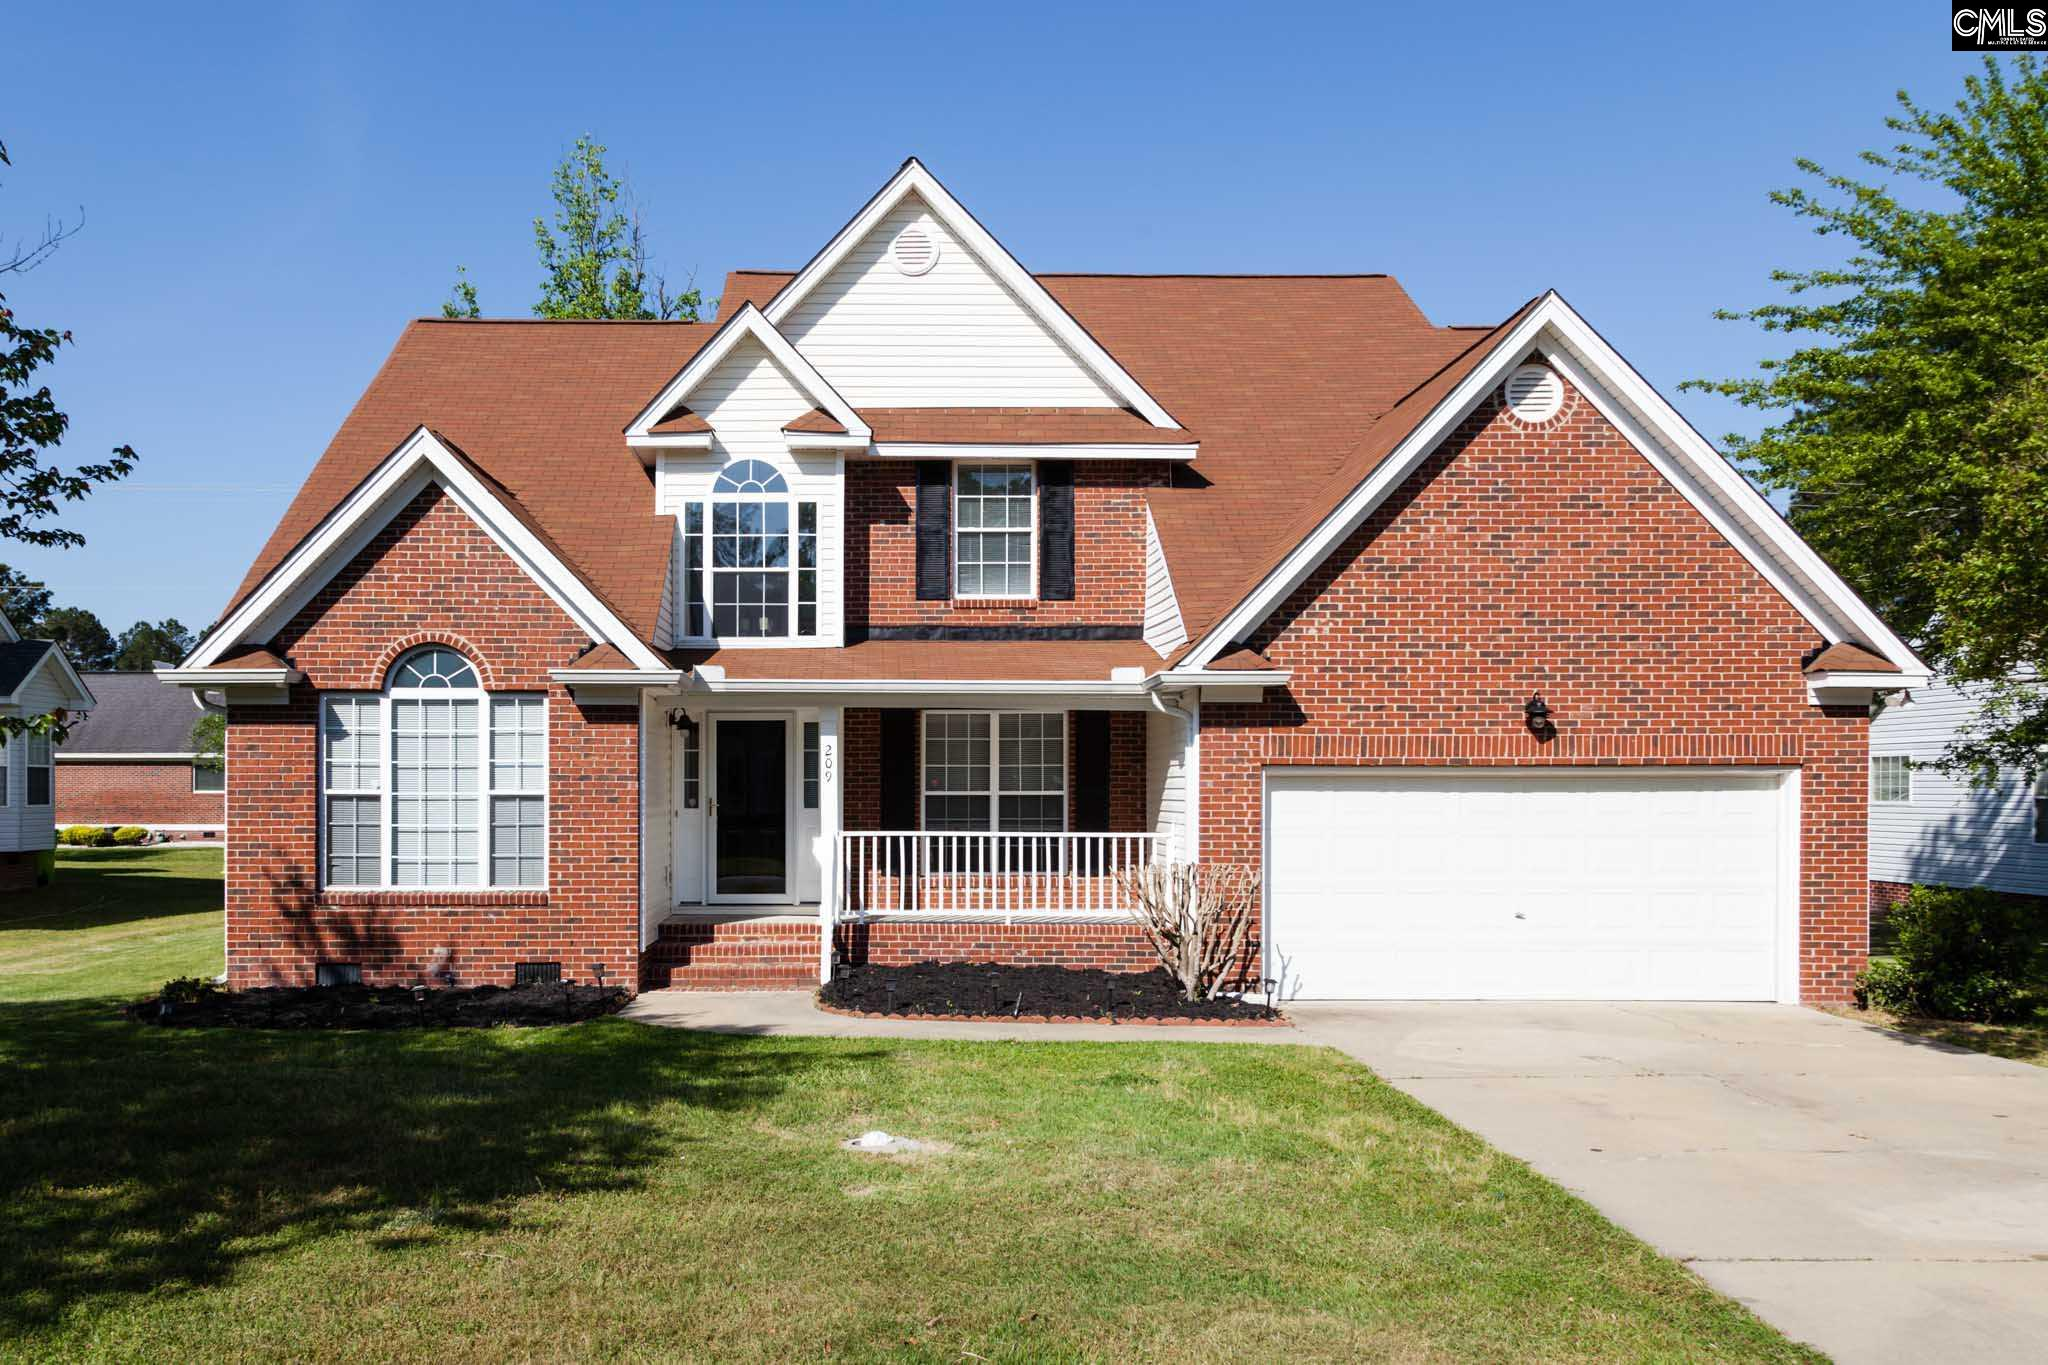 209 Brickingham Columbia, SC 29229-8789